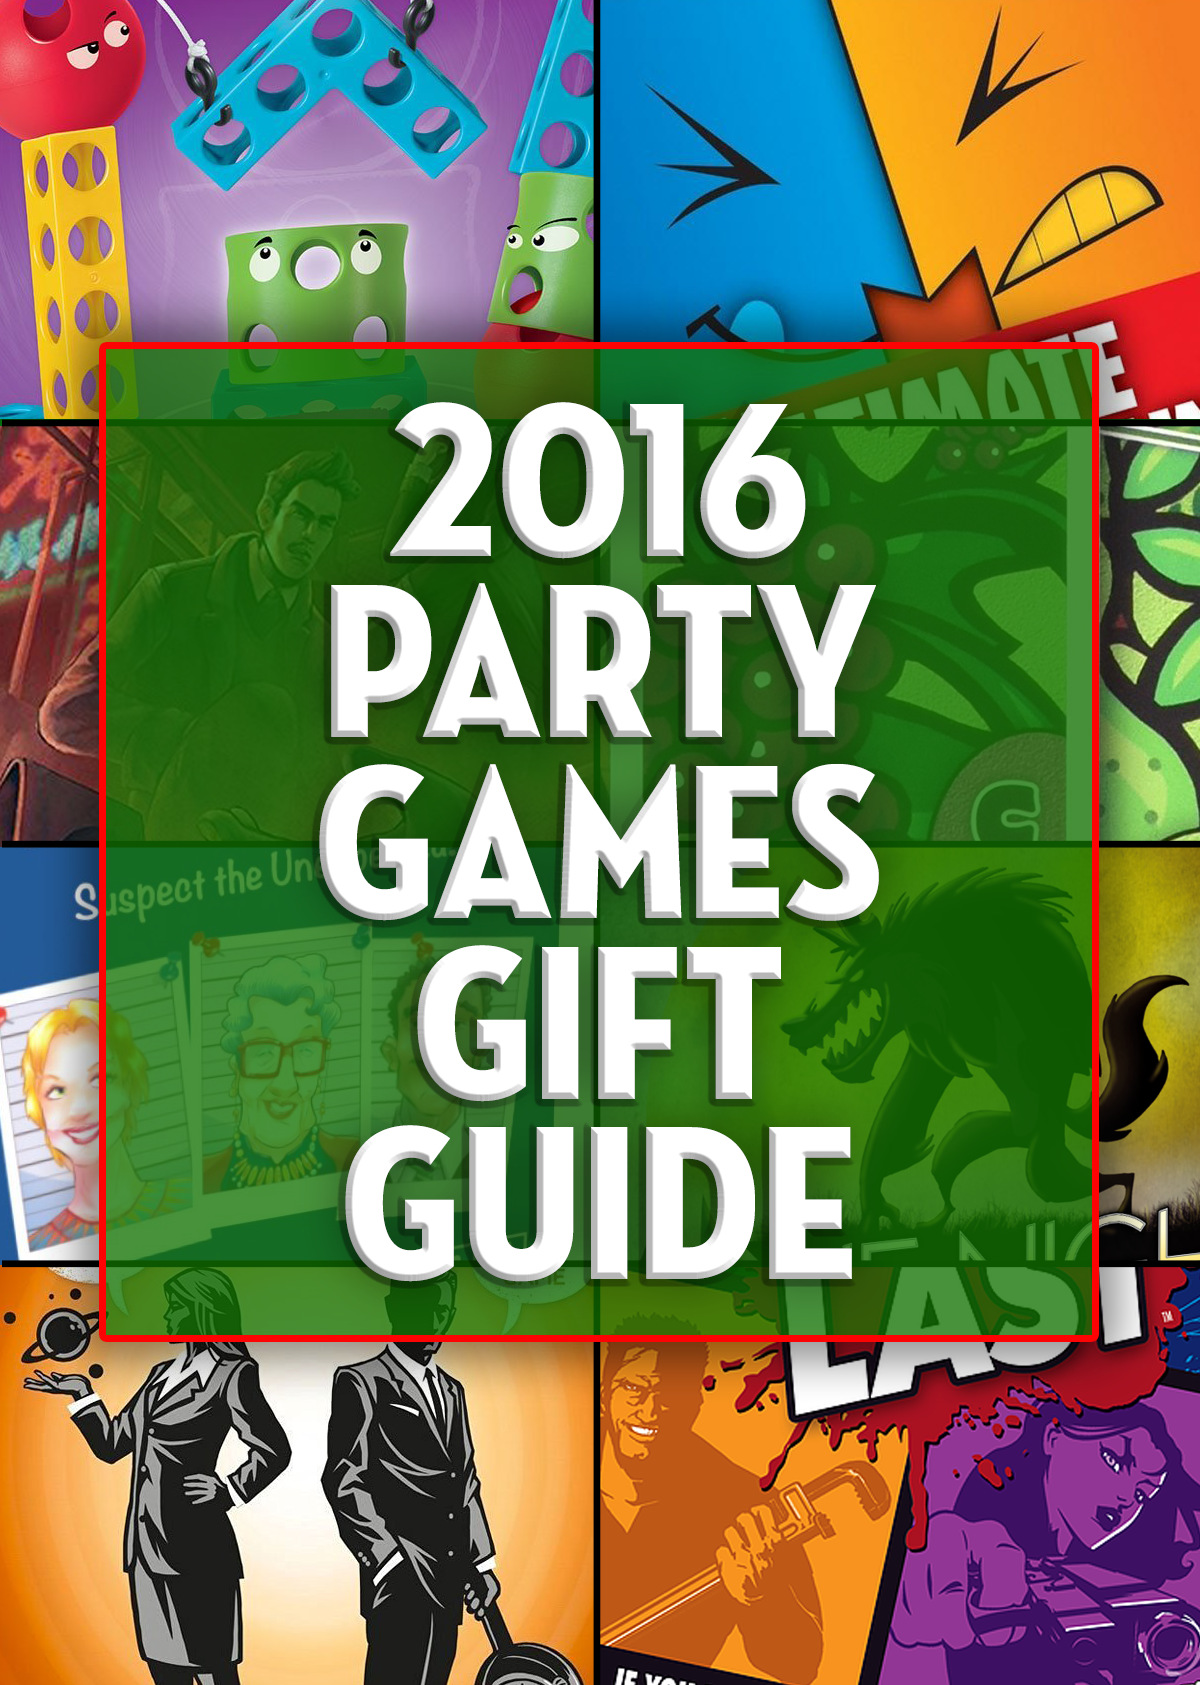 Finding good games for your next party can be difficult. Check out our 2016 Party Games Gift Guide for a dozen games that support large groups! - SahmReviews.com